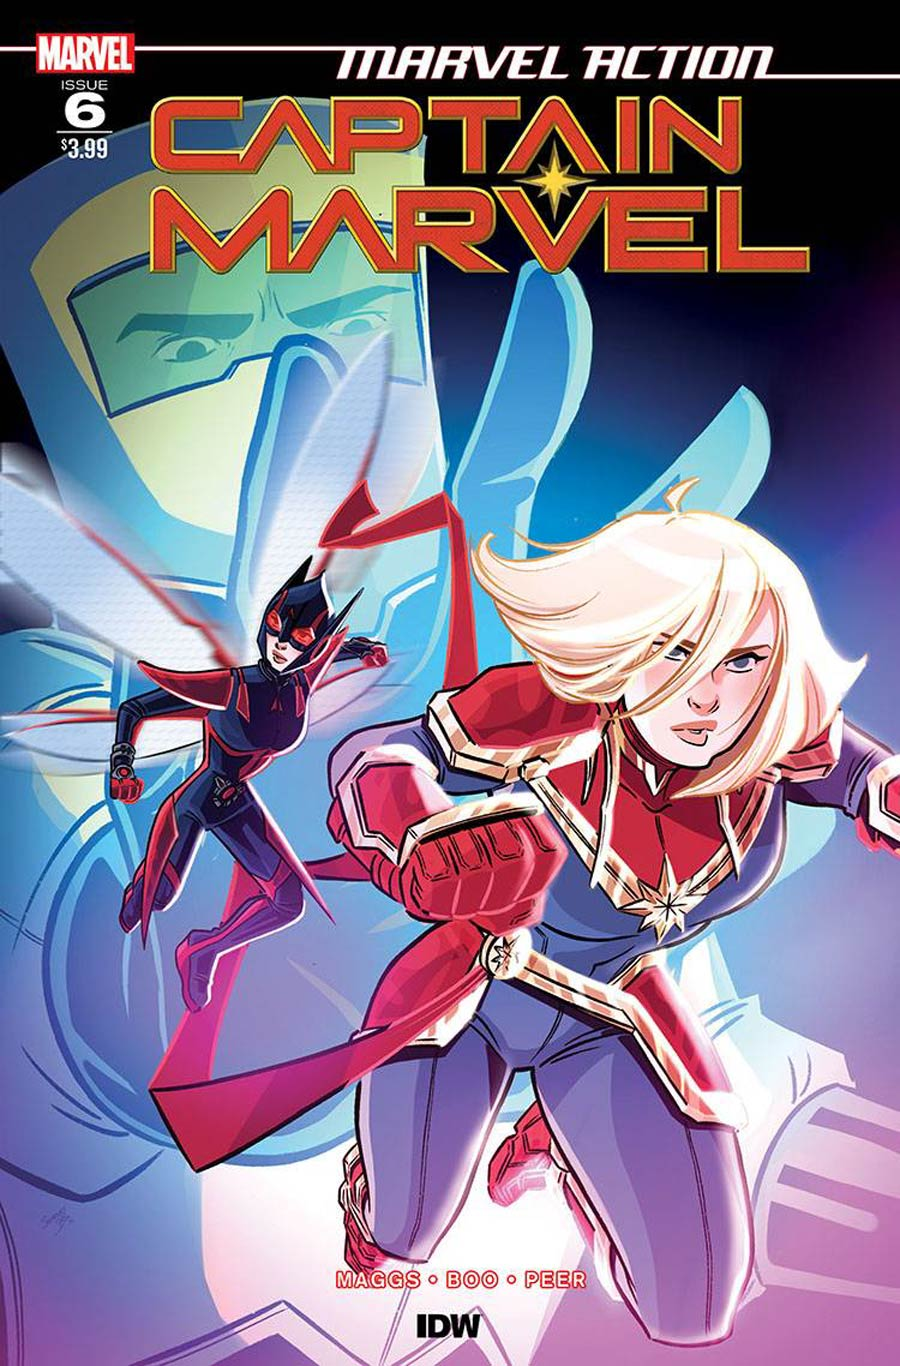 Marvel Action Captain Marvel #6 Cover A Regular Sweeney Boo Cover